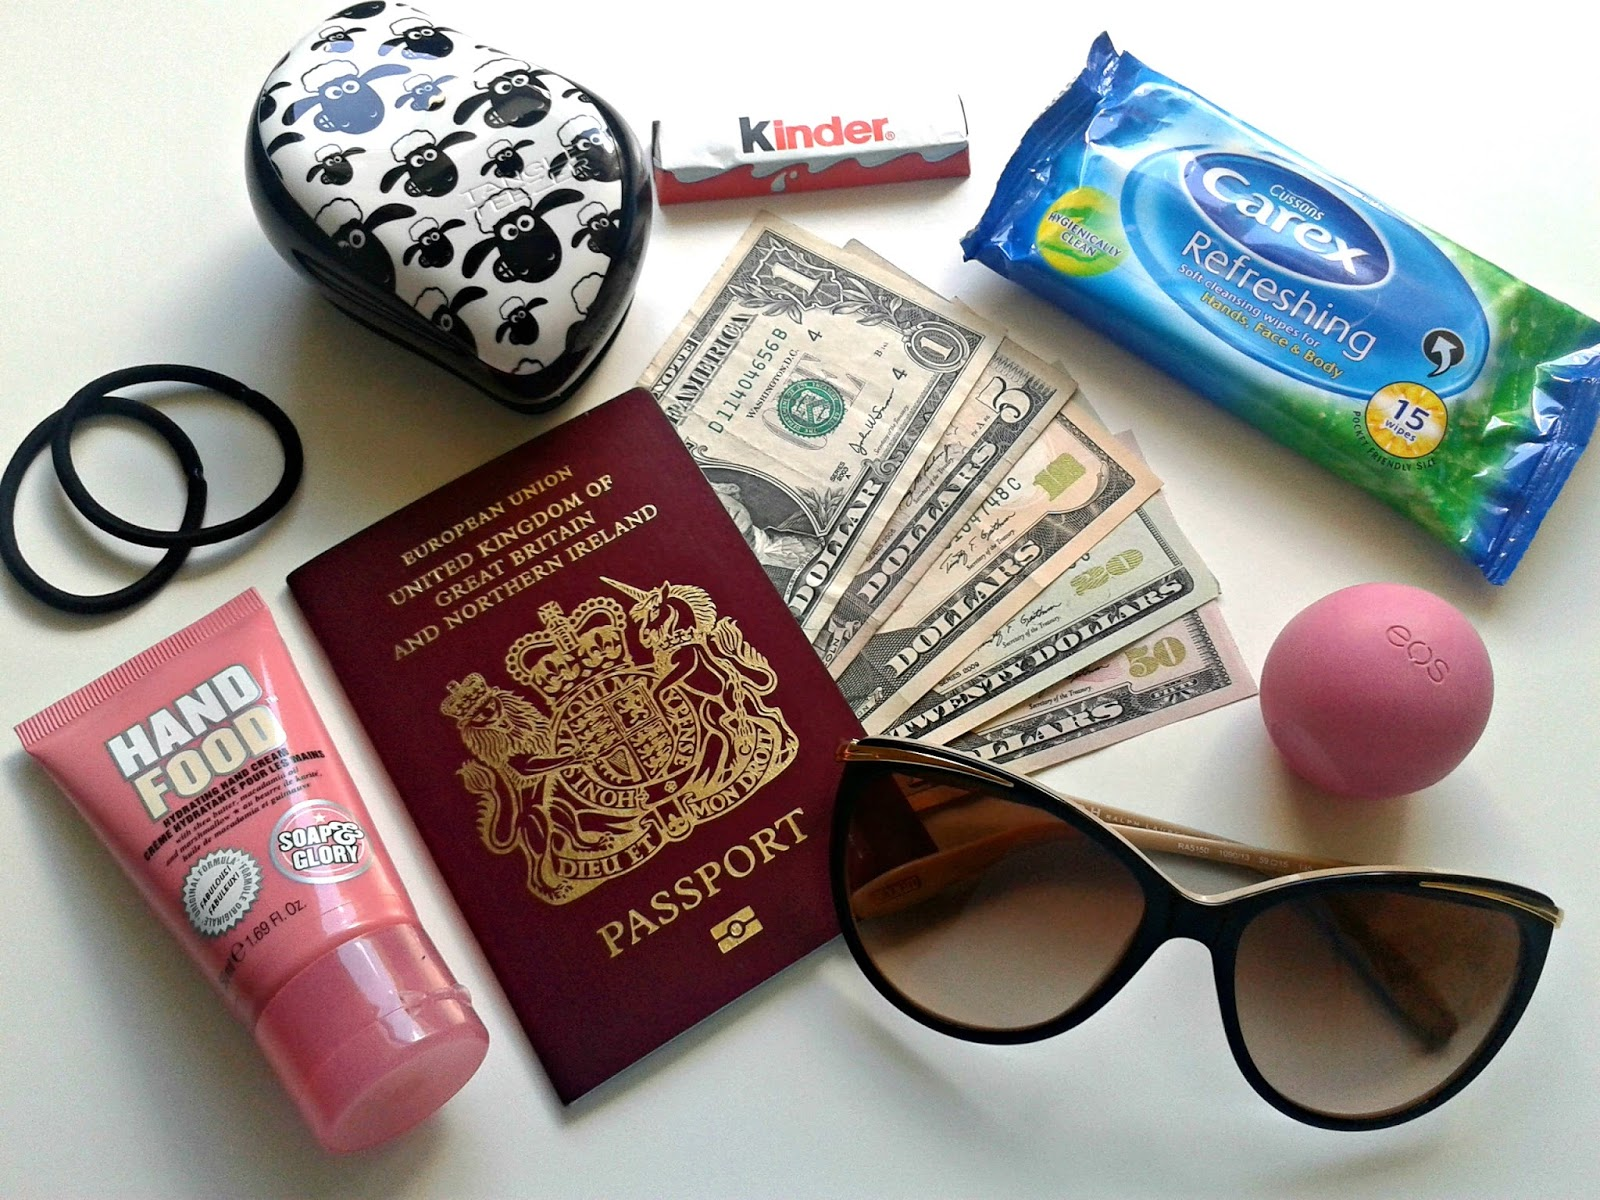 Ellis Tuesday's Summer Sun-days: Hand Luggage / Designer Sunglasses Giveaway Ralph by Ralph Lauren Sunglasses Shop Soap & Glory Tangle Teezer EOS Travel Beauty Review